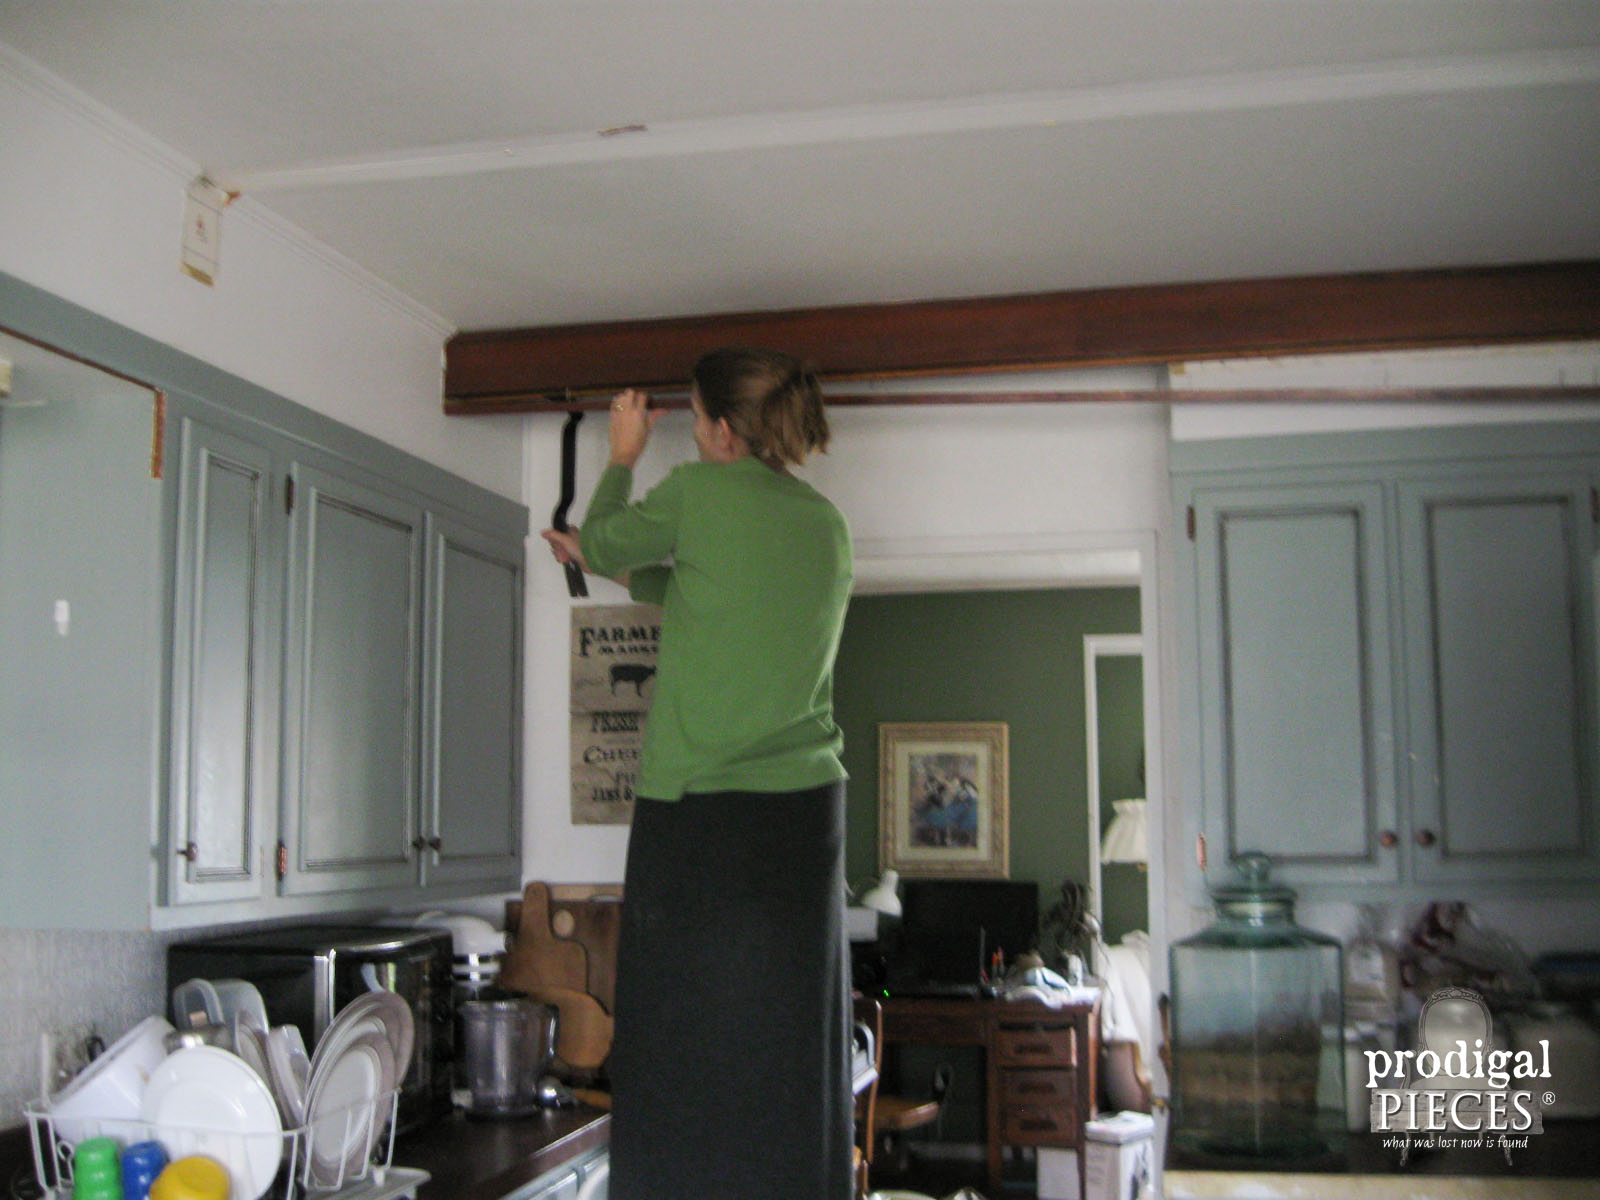 Removing Faux Barn Beams in Kitchen | Prodigal Pieces | www.prodigalpieces.com